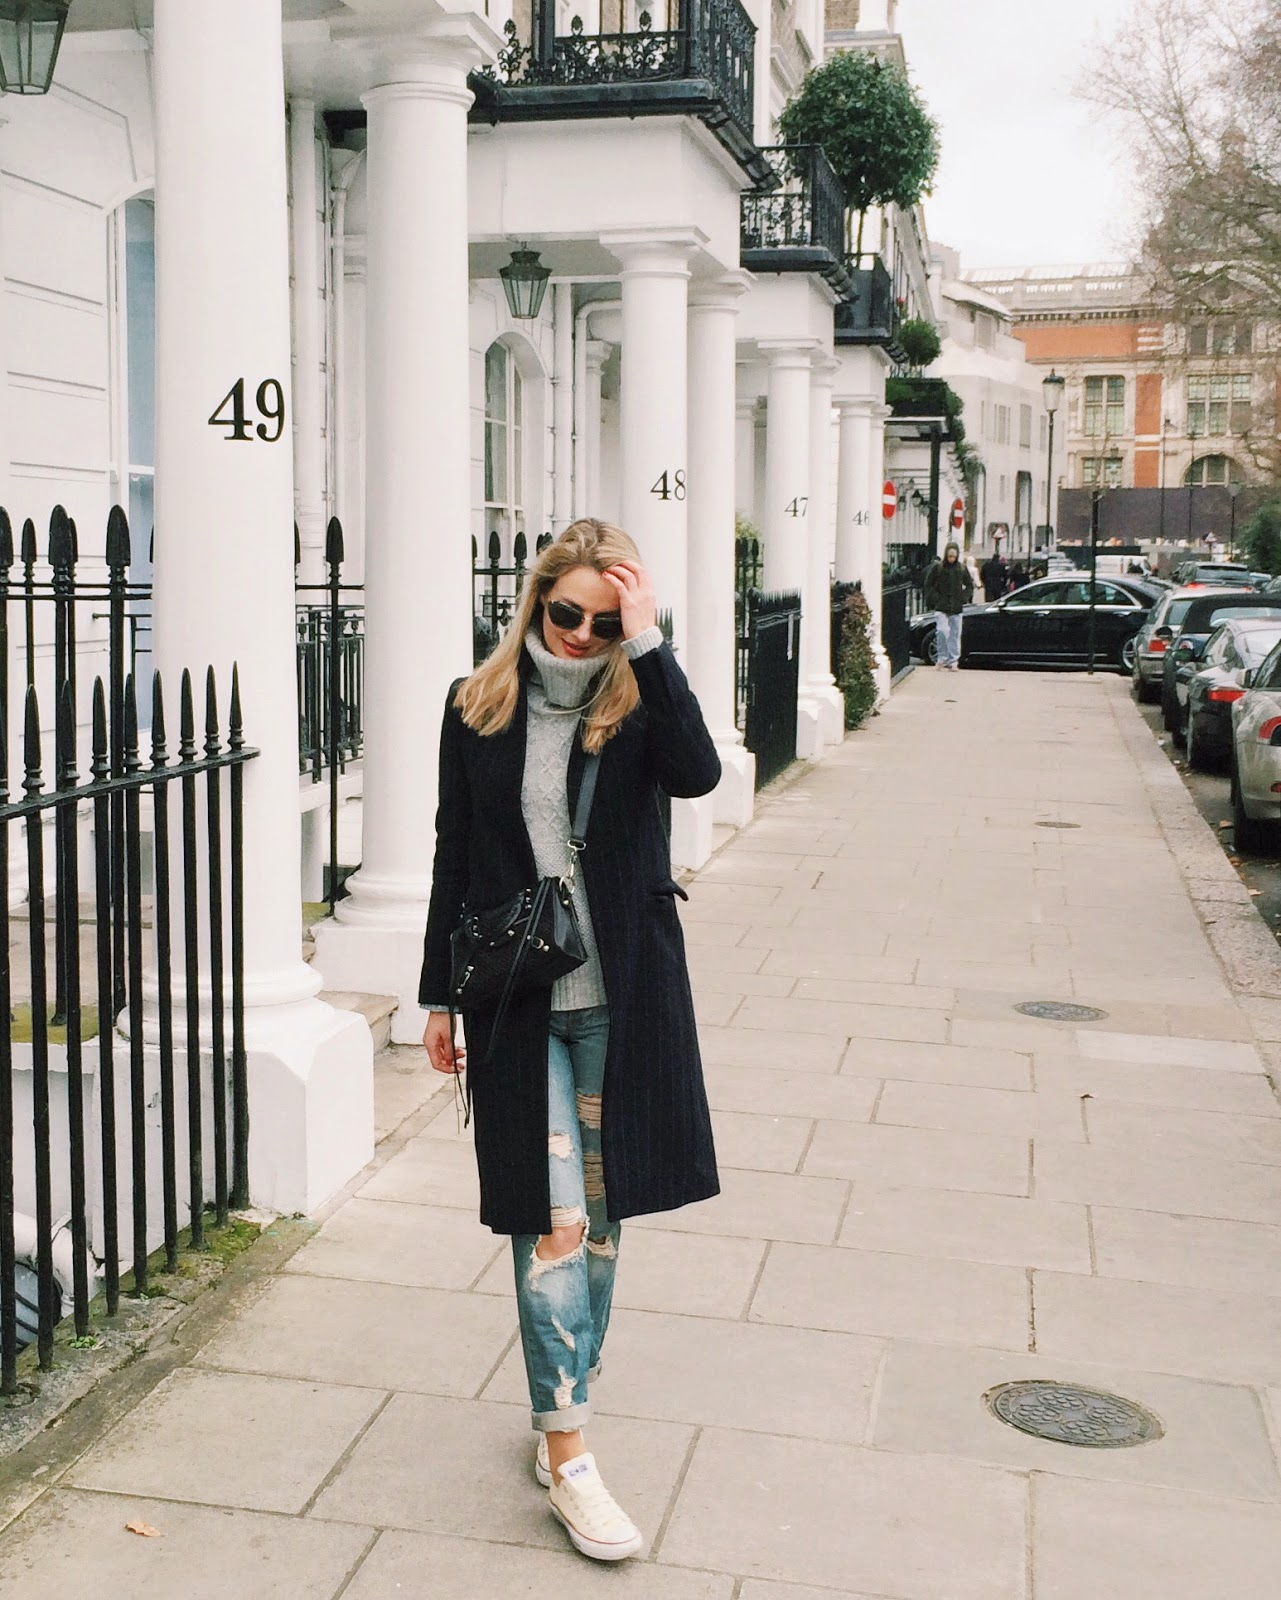 Streetstyle london, london blogger, pinstriped coat, boyfriend jeans, boyfriend jeans ripped, asos boyfriend jeans, white converse and boyfriend jeans, balenciaga shoulder bag, black balenciaga mini city, miu miu glitter sunglasses, grey turtleneck jumper